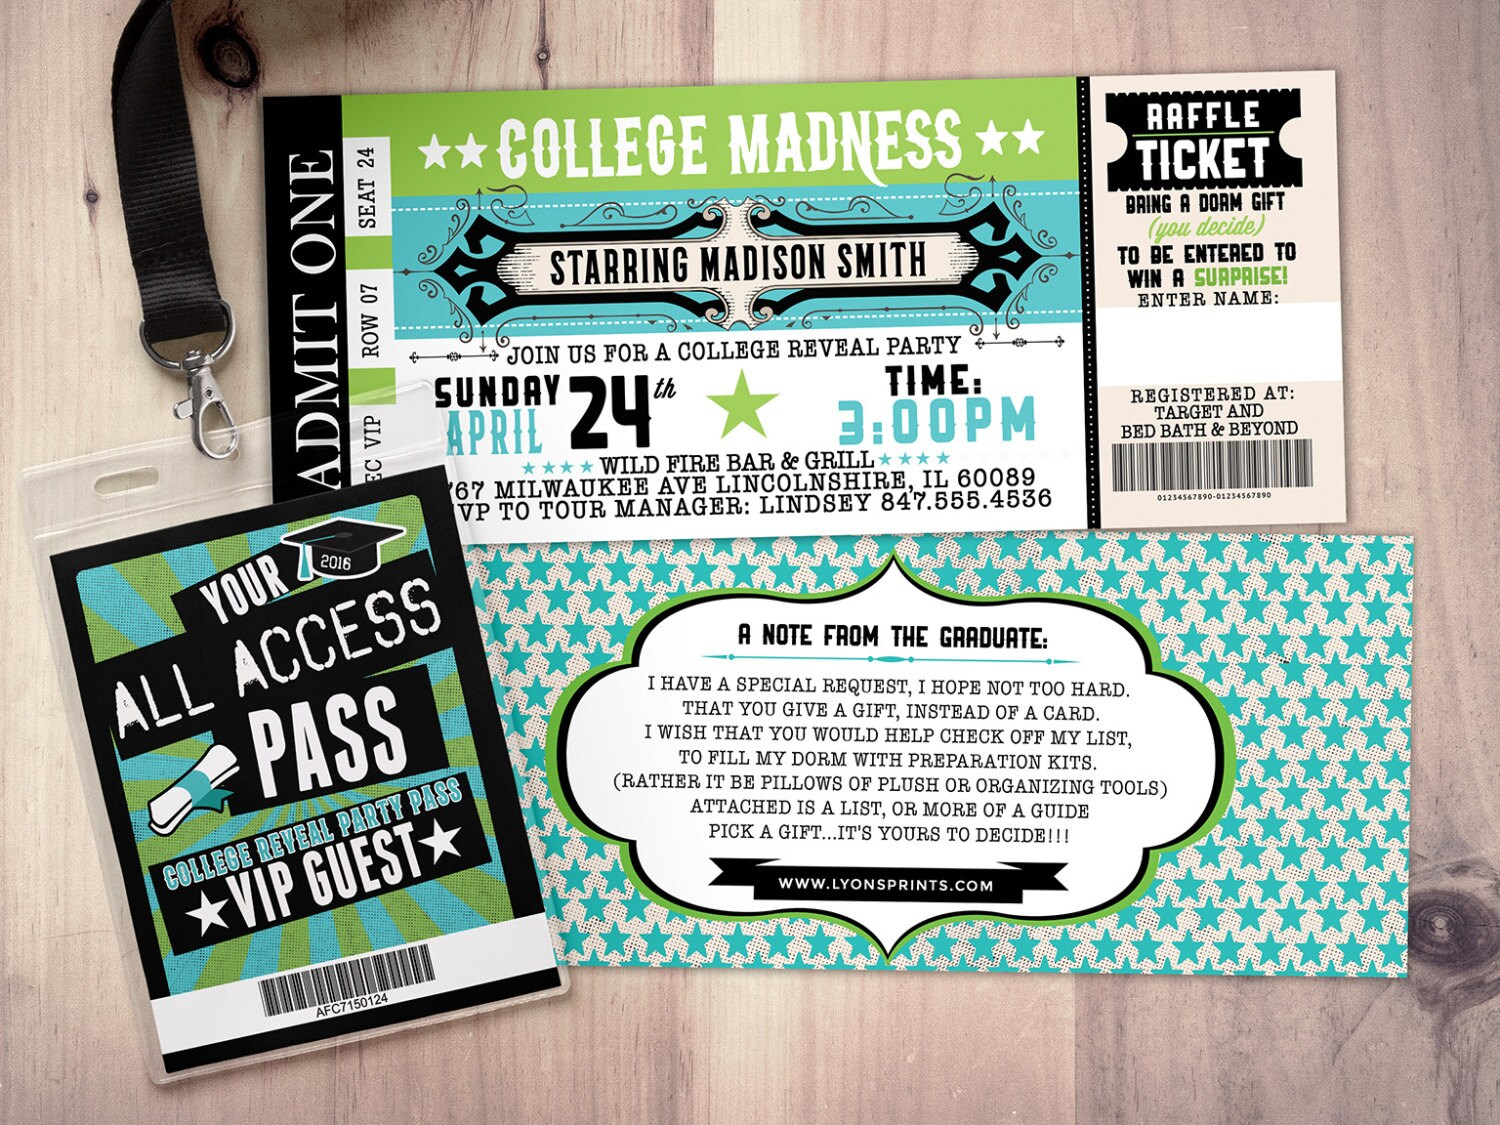 college reveal party concert ticket graduation party invitation